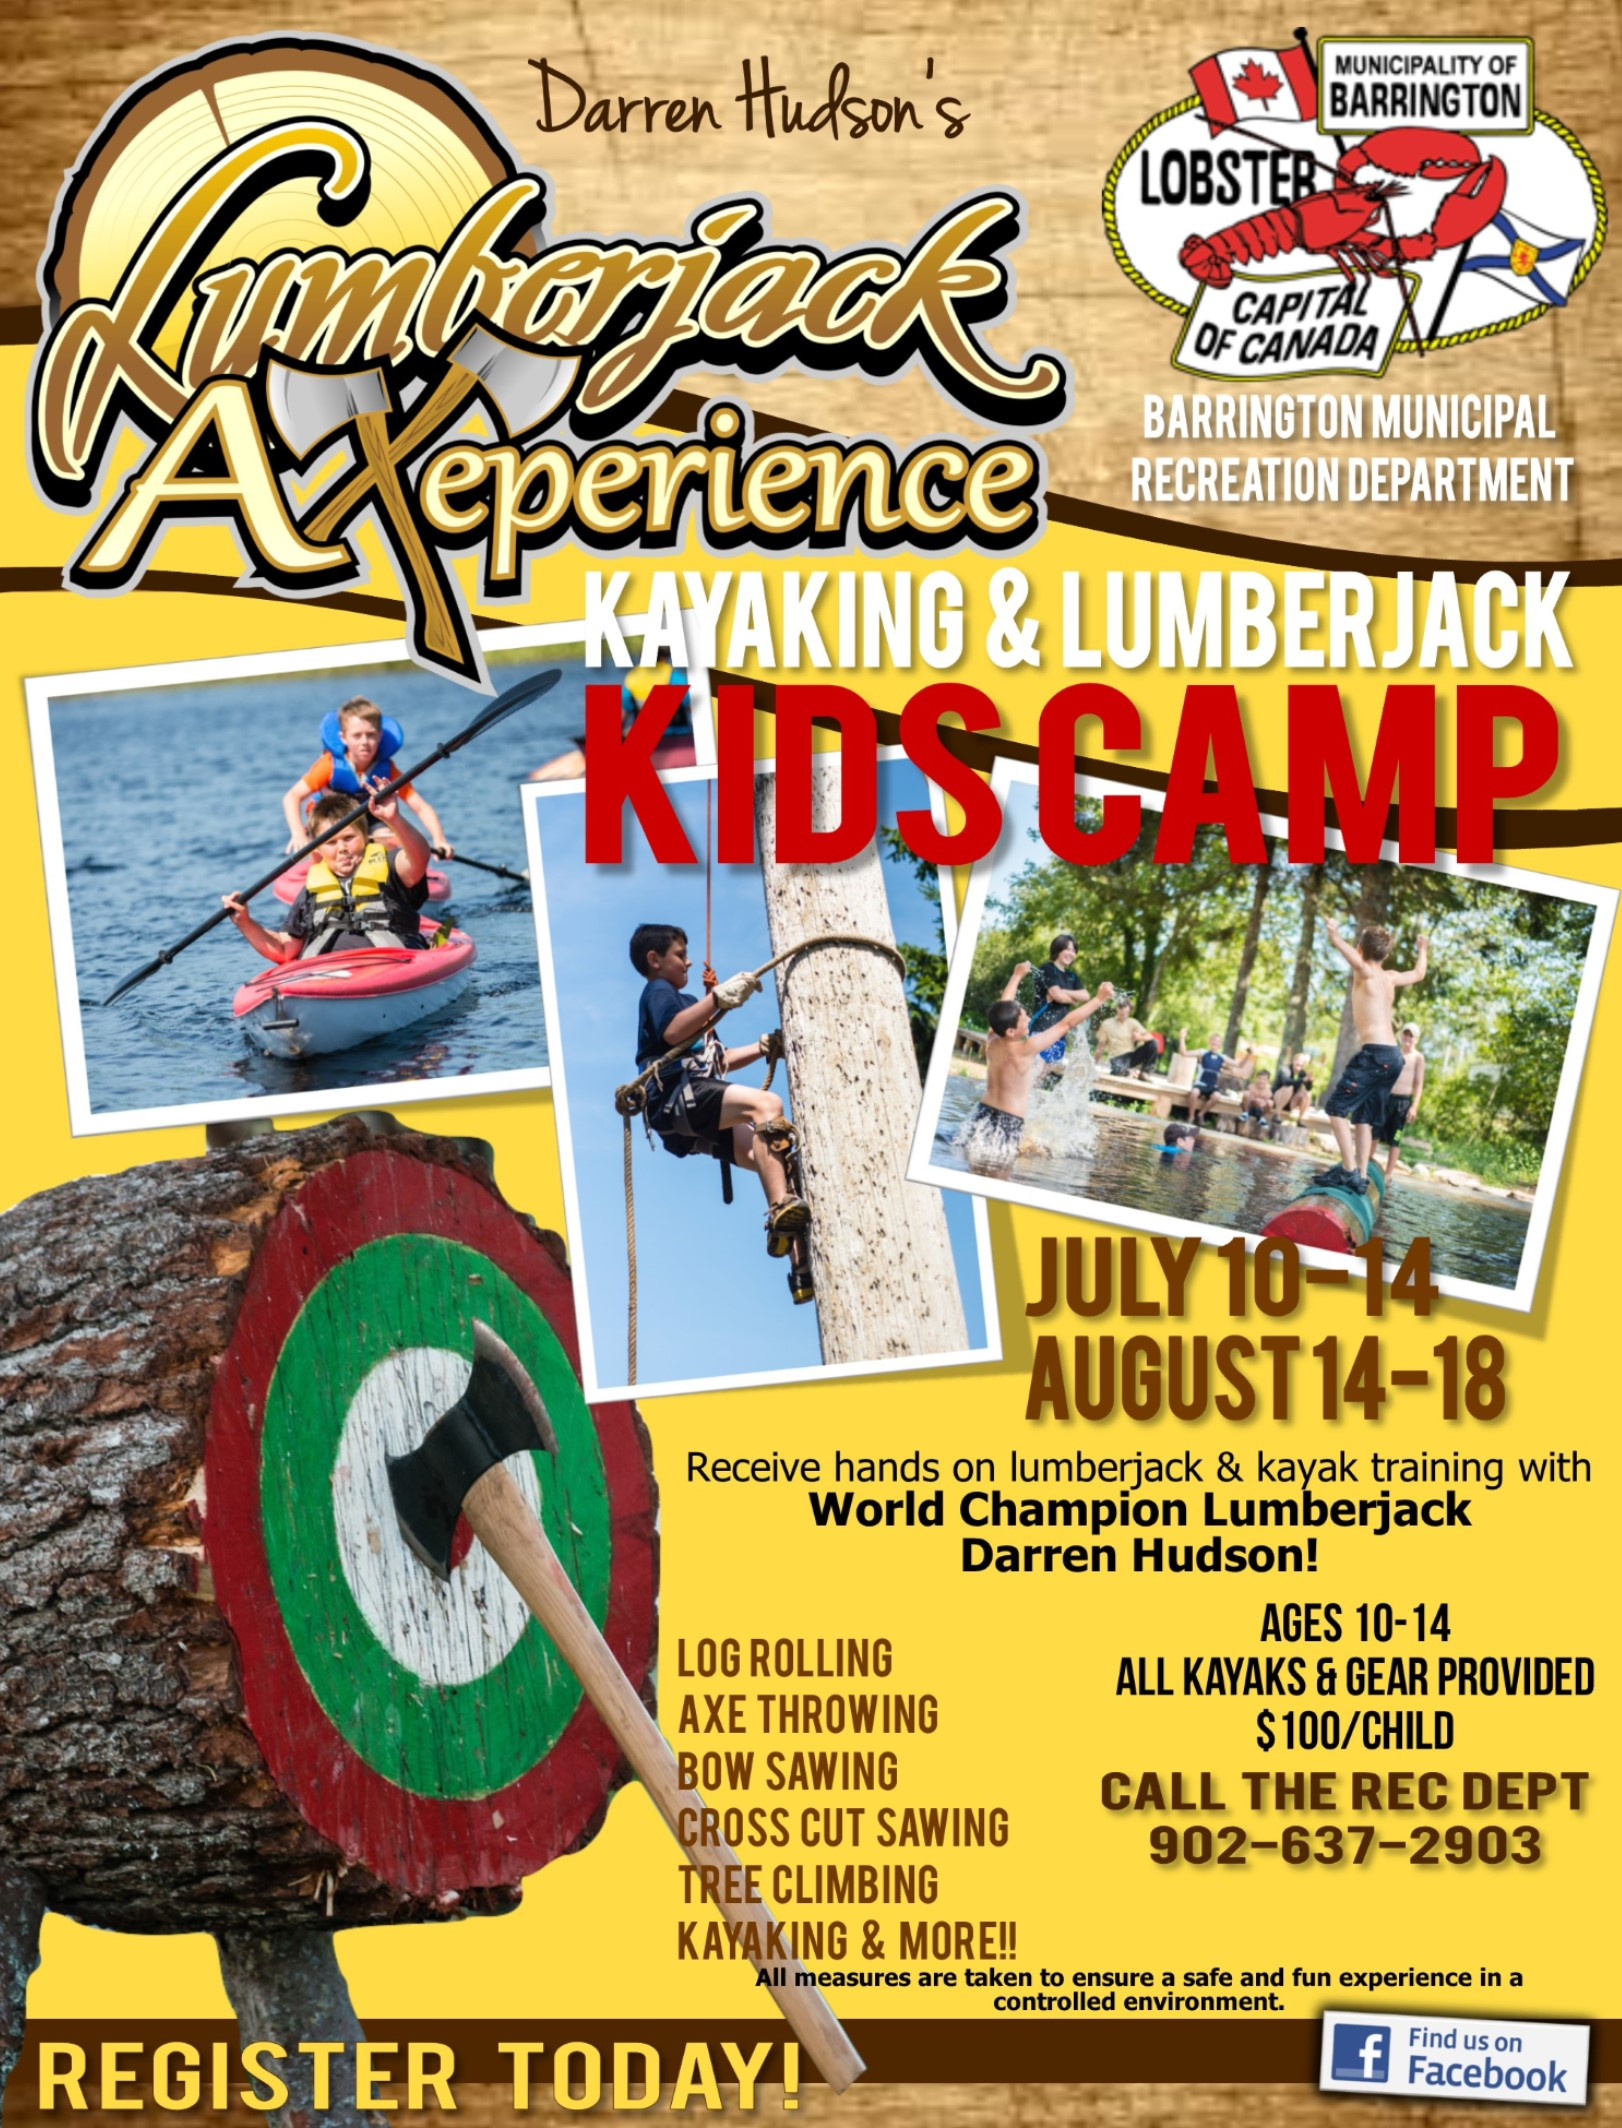 Lumberjack Kids Camp 2017